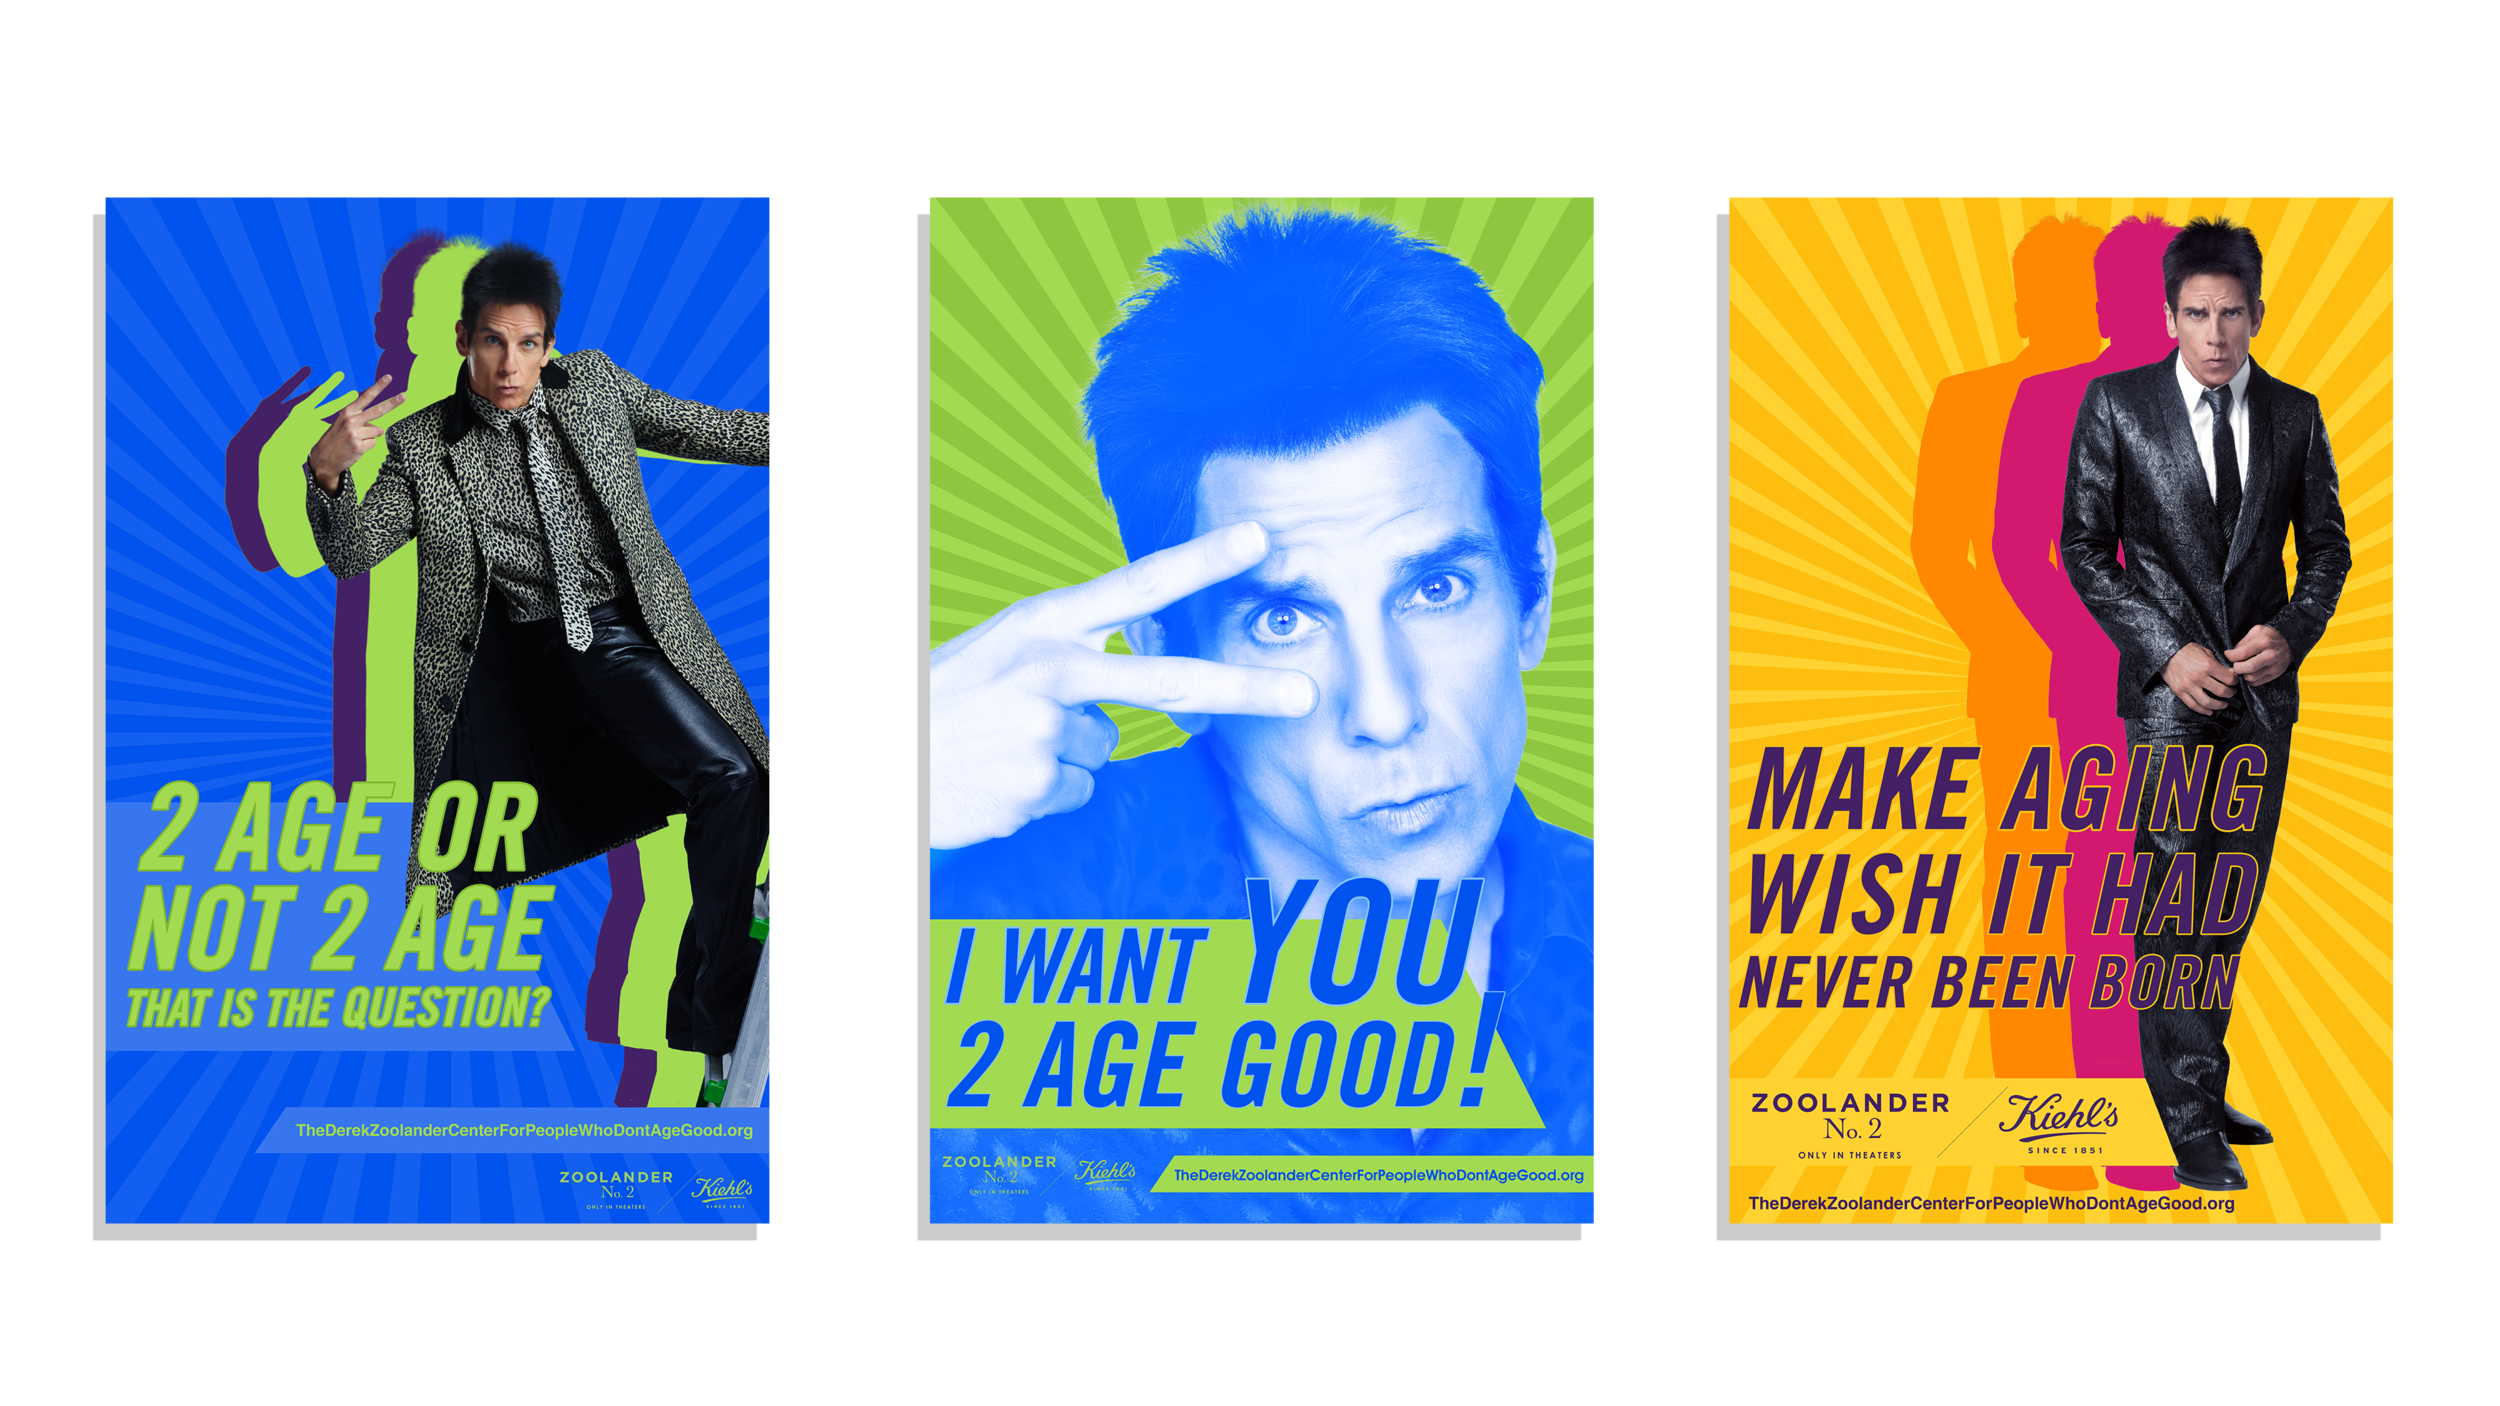 My top three favorite posters for the campaign.